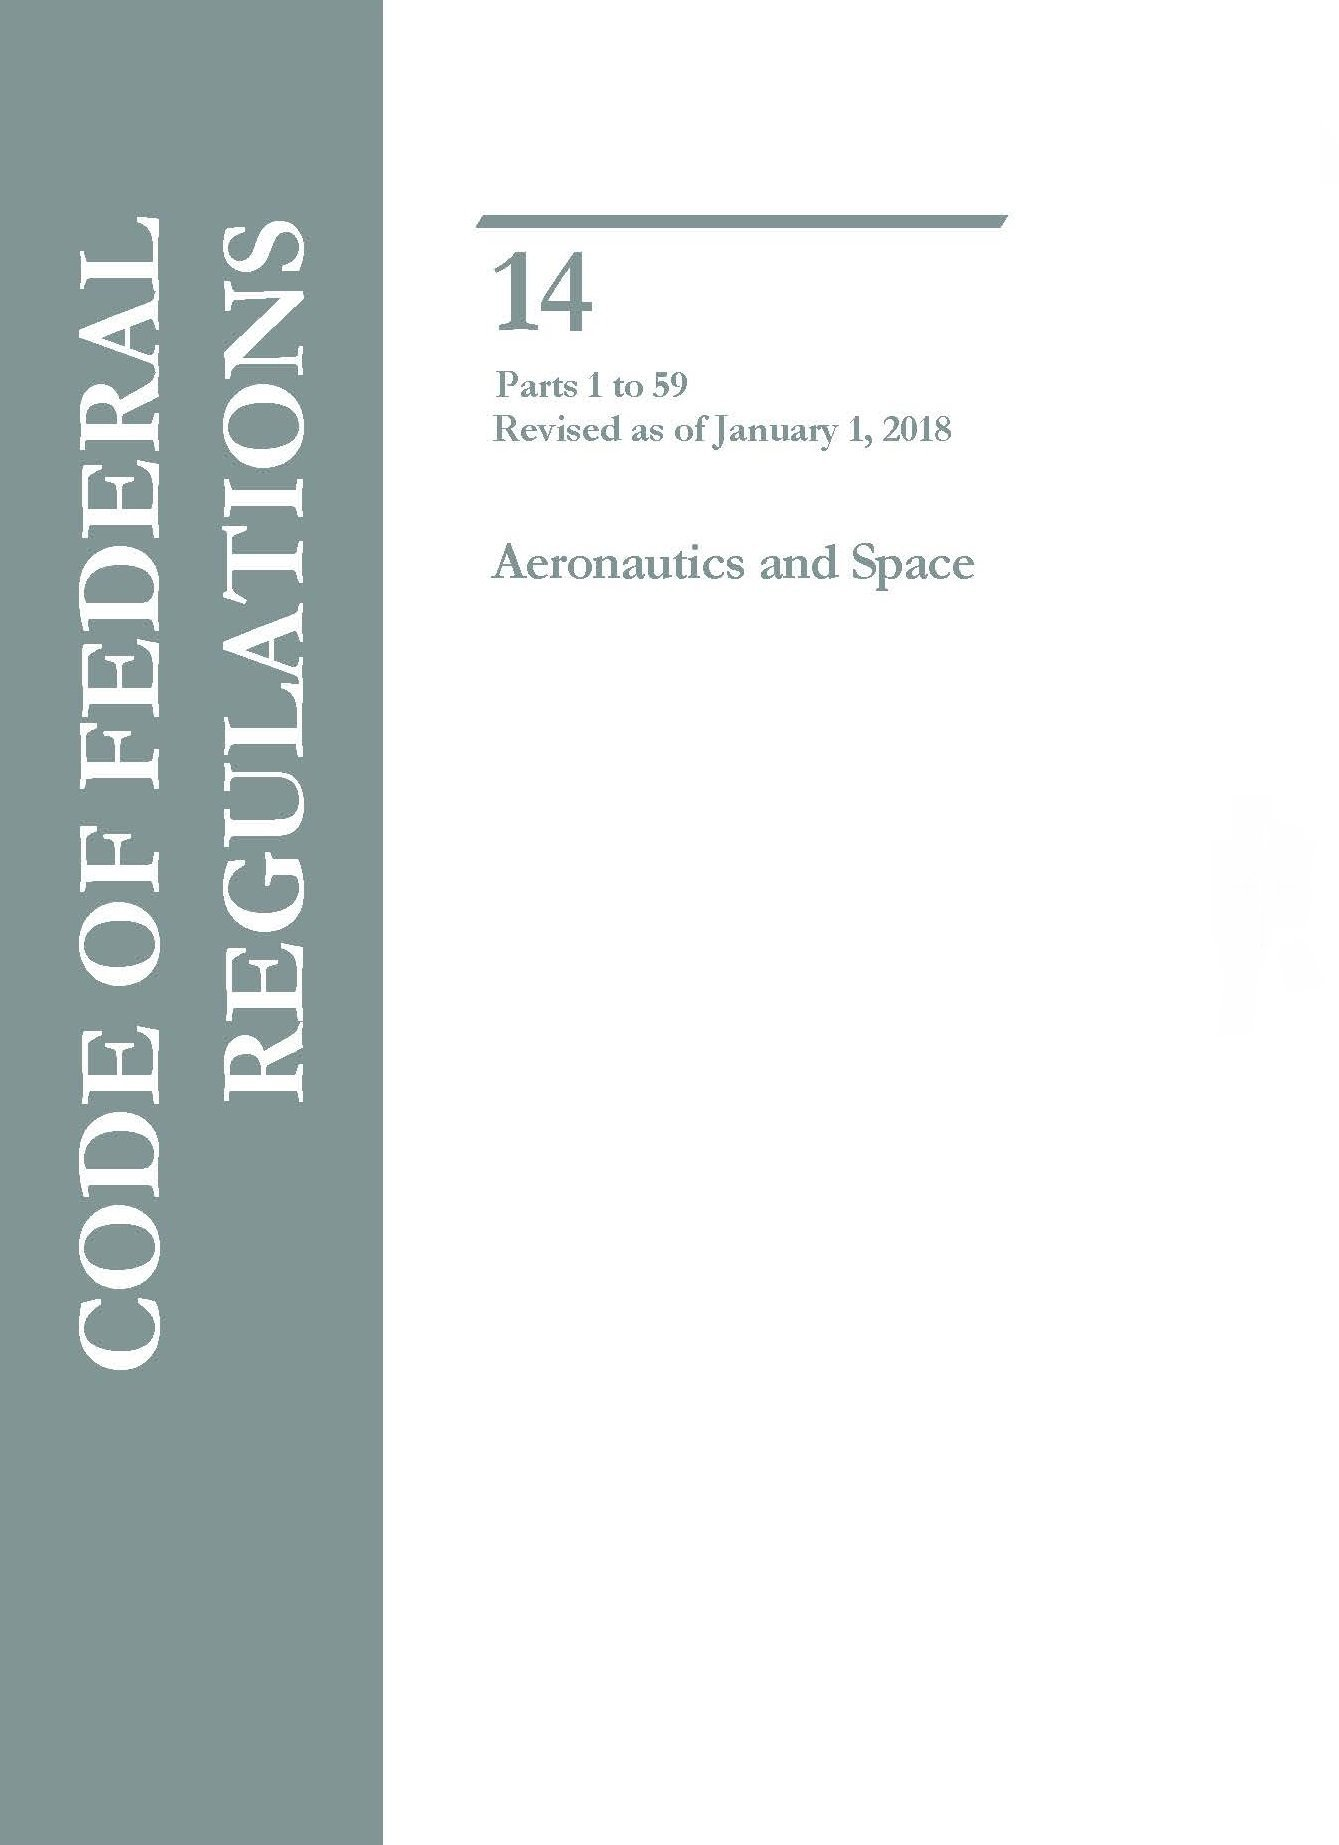 Code of Federal Regulations Title 14 Parts 1-59 Aeronautics and Space pdf